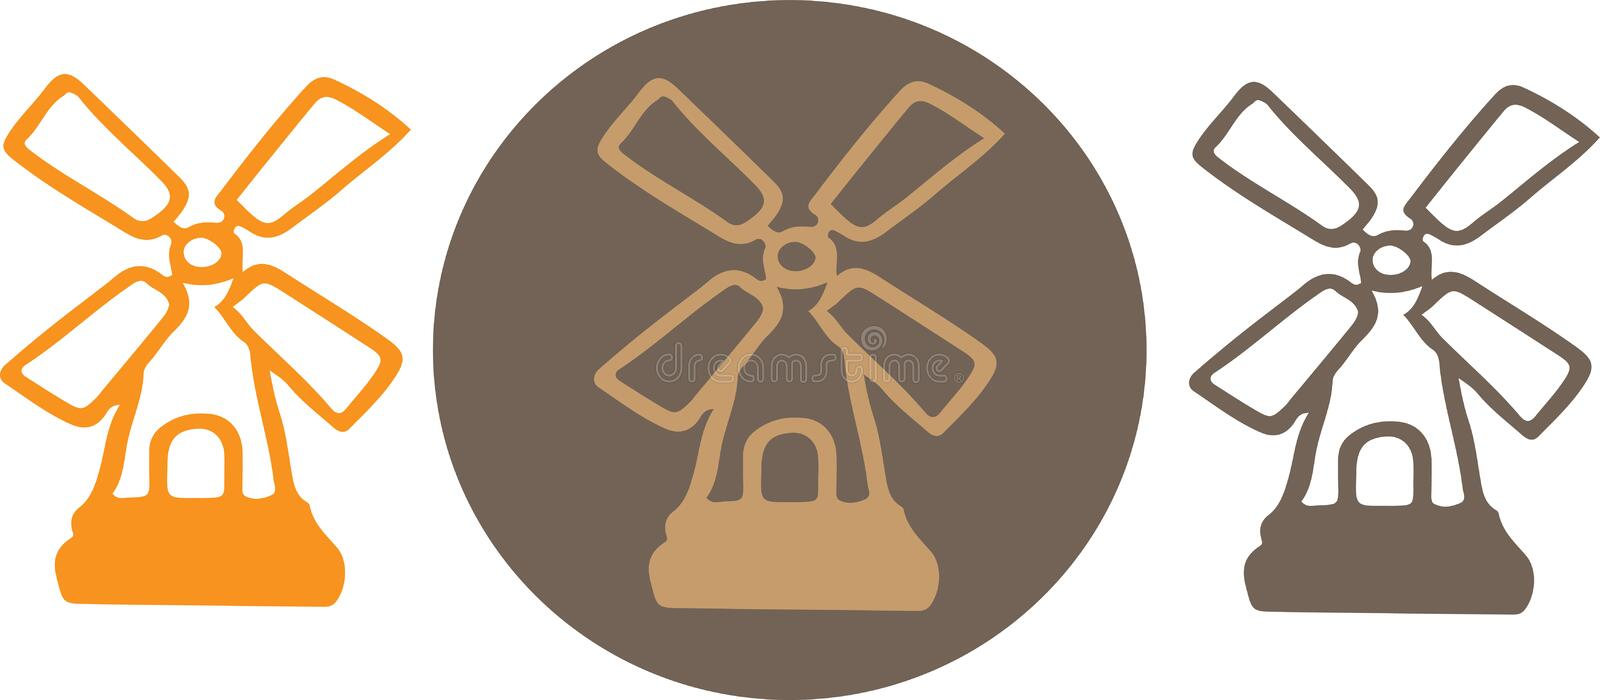 Windmill icon isolated on background.  royalty free illustration